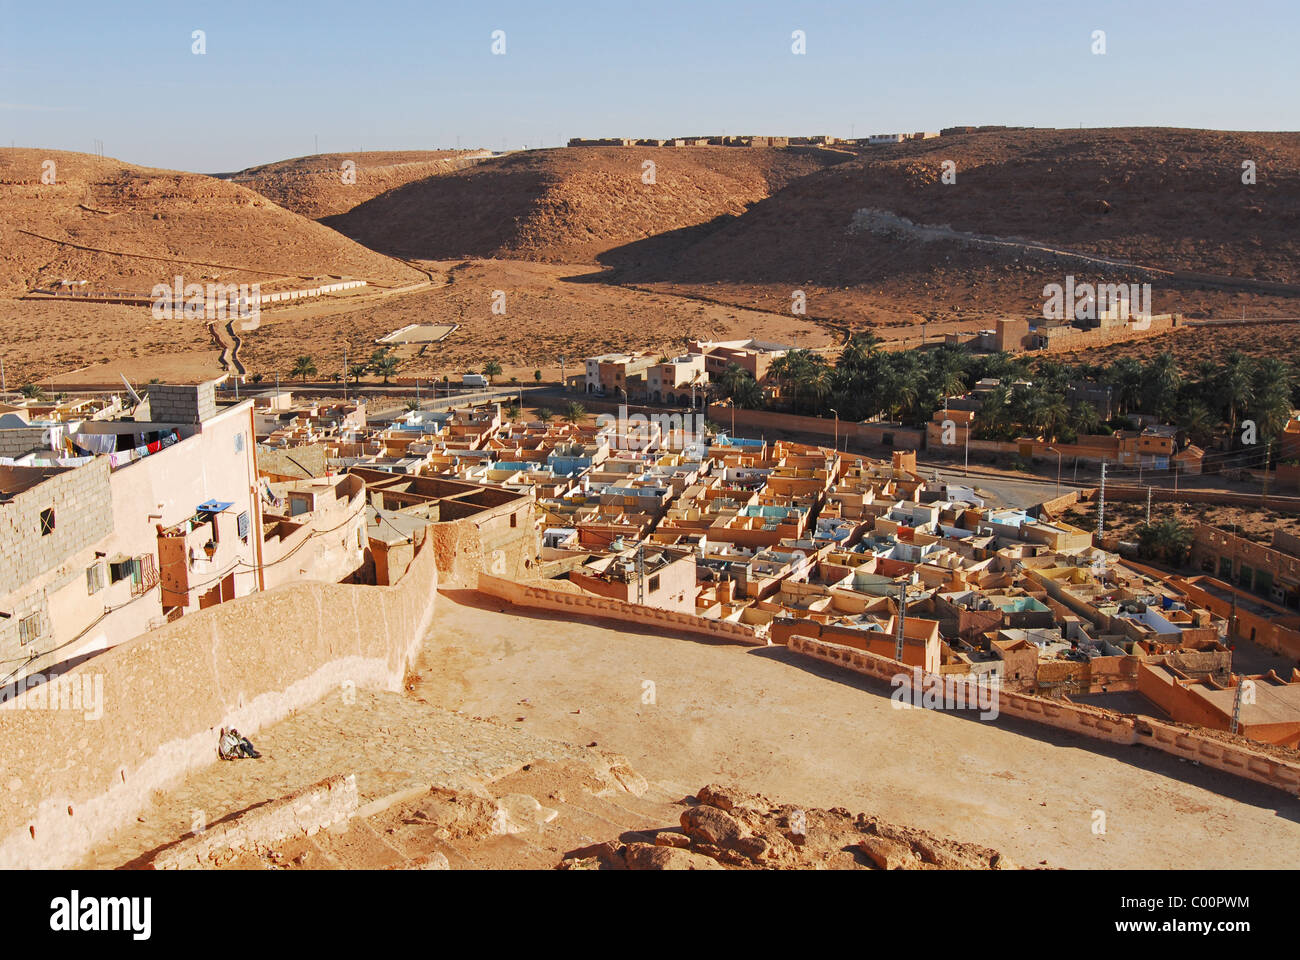 Lovely Algeria, Elevated View Of Ancient Houses In The Village   Stock Image